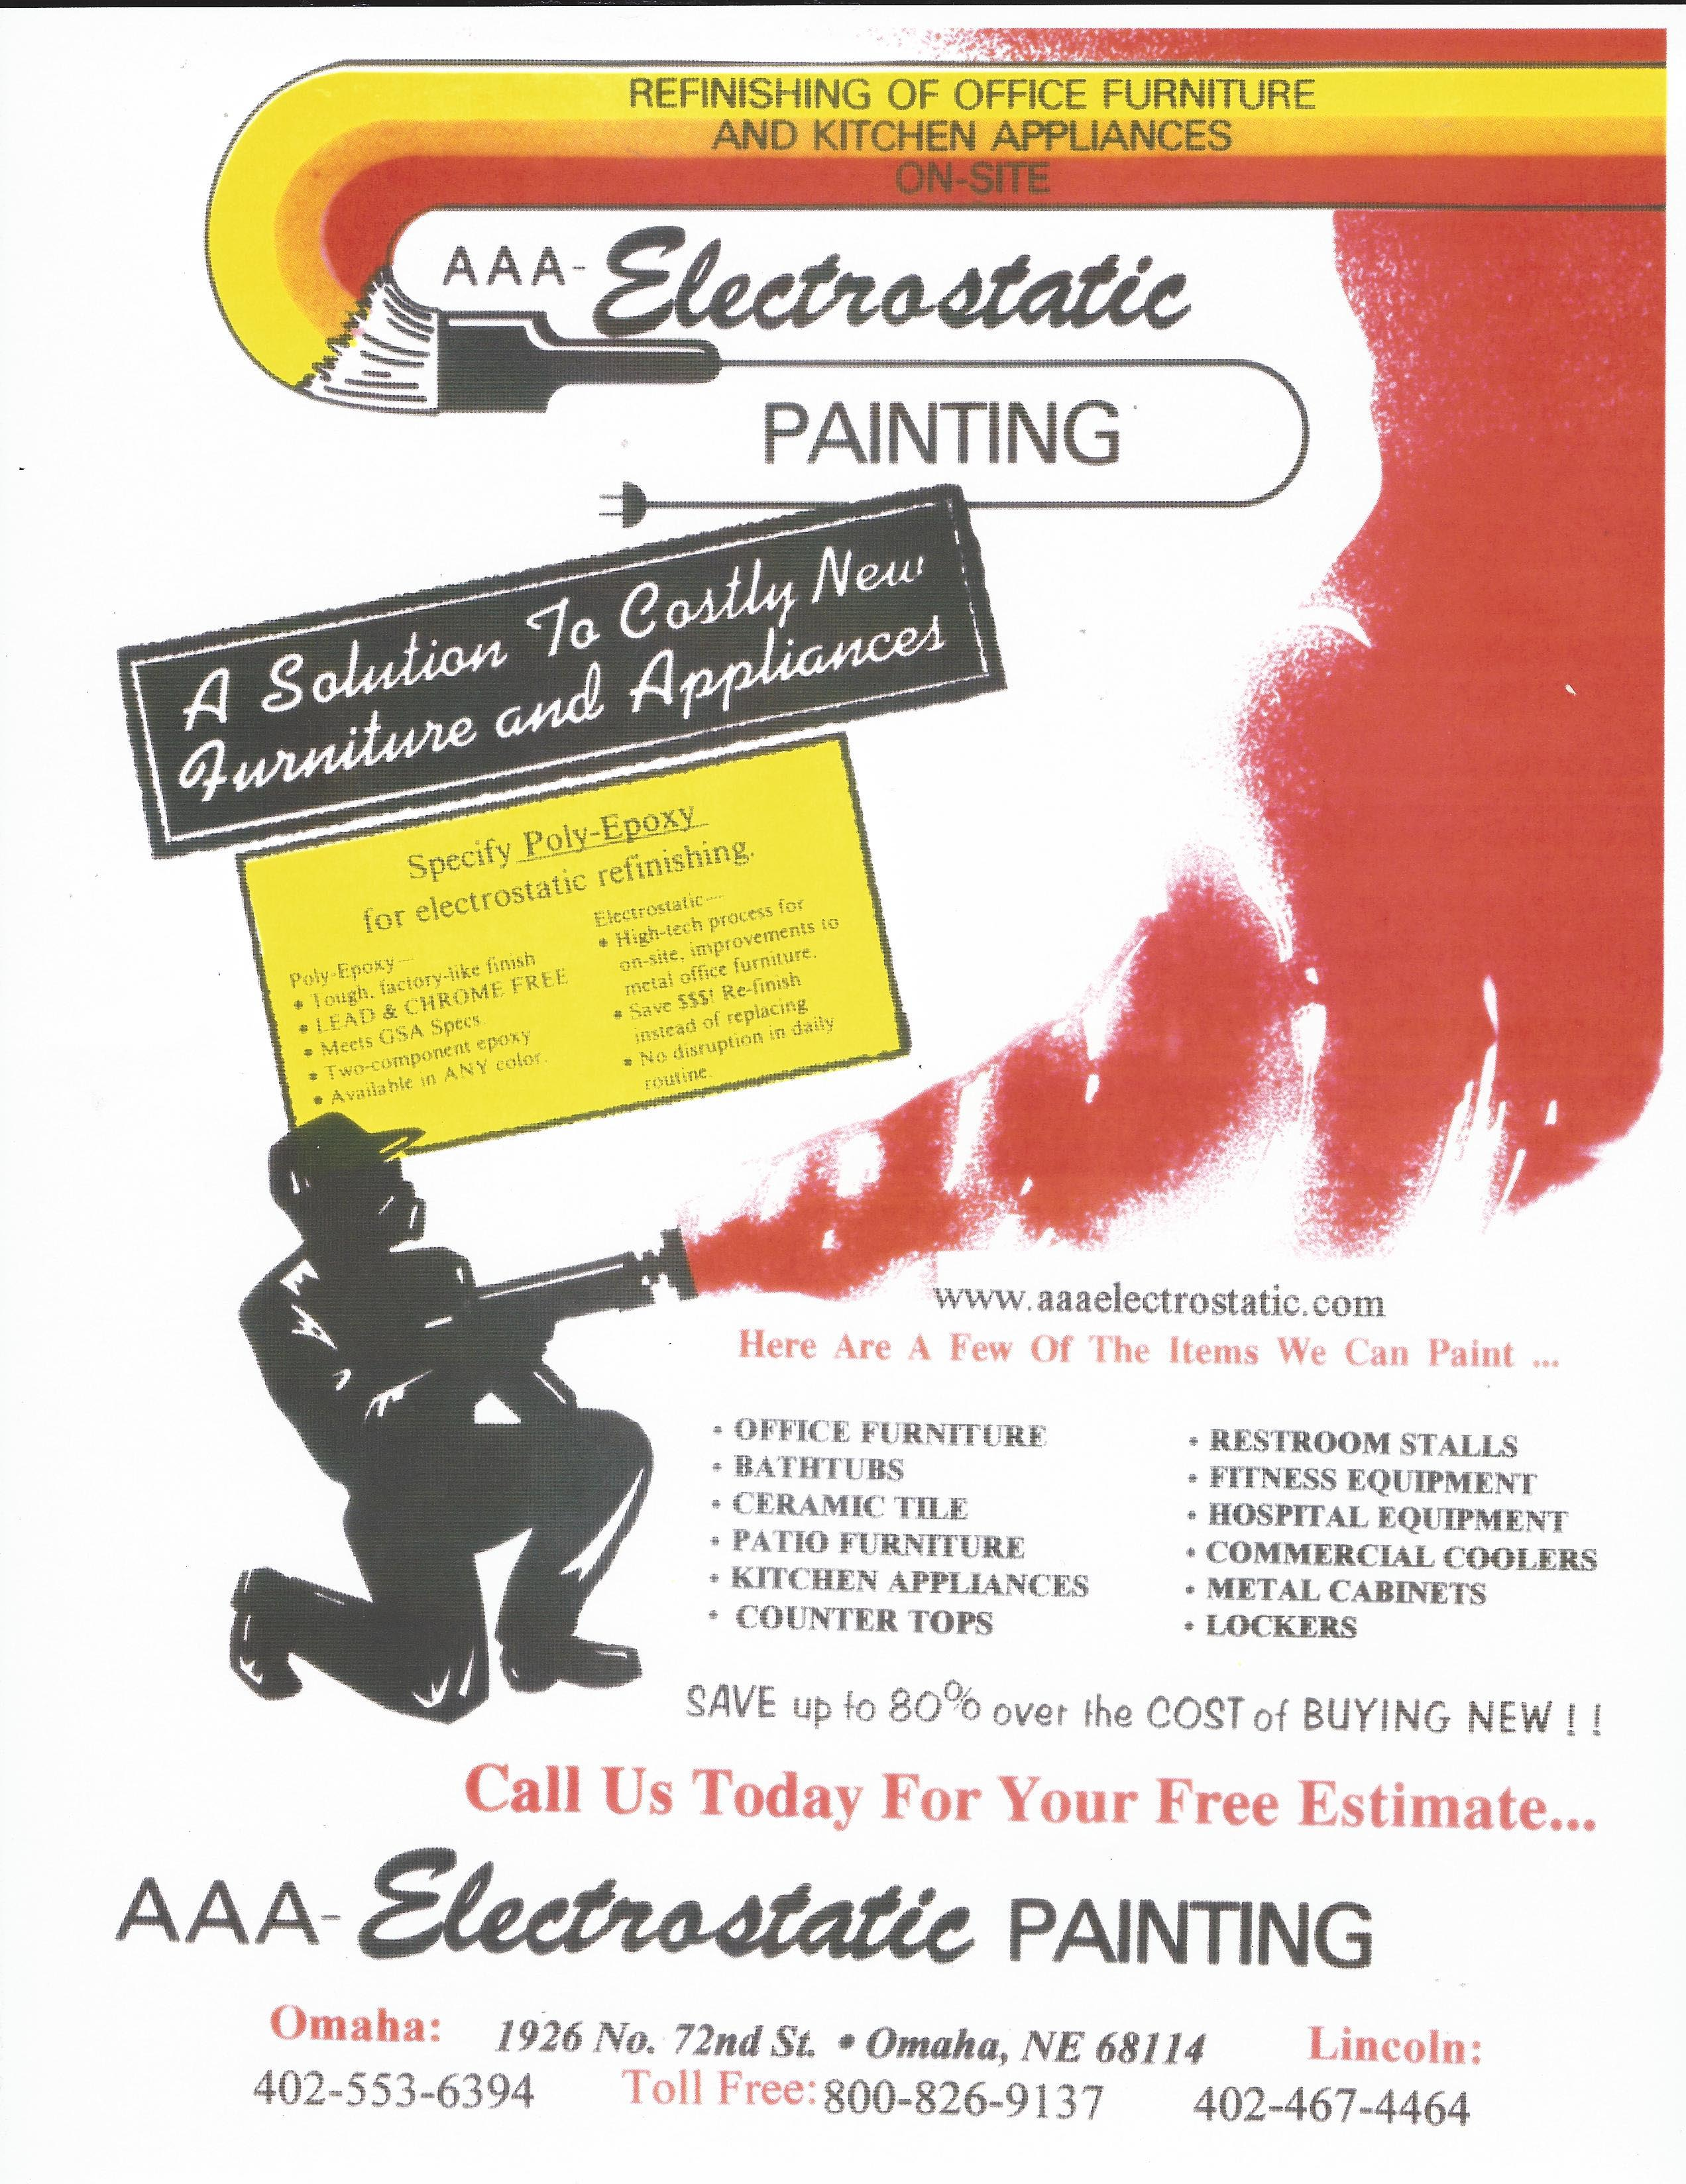 AAA Electrostatic Painting  Flyers Item #1